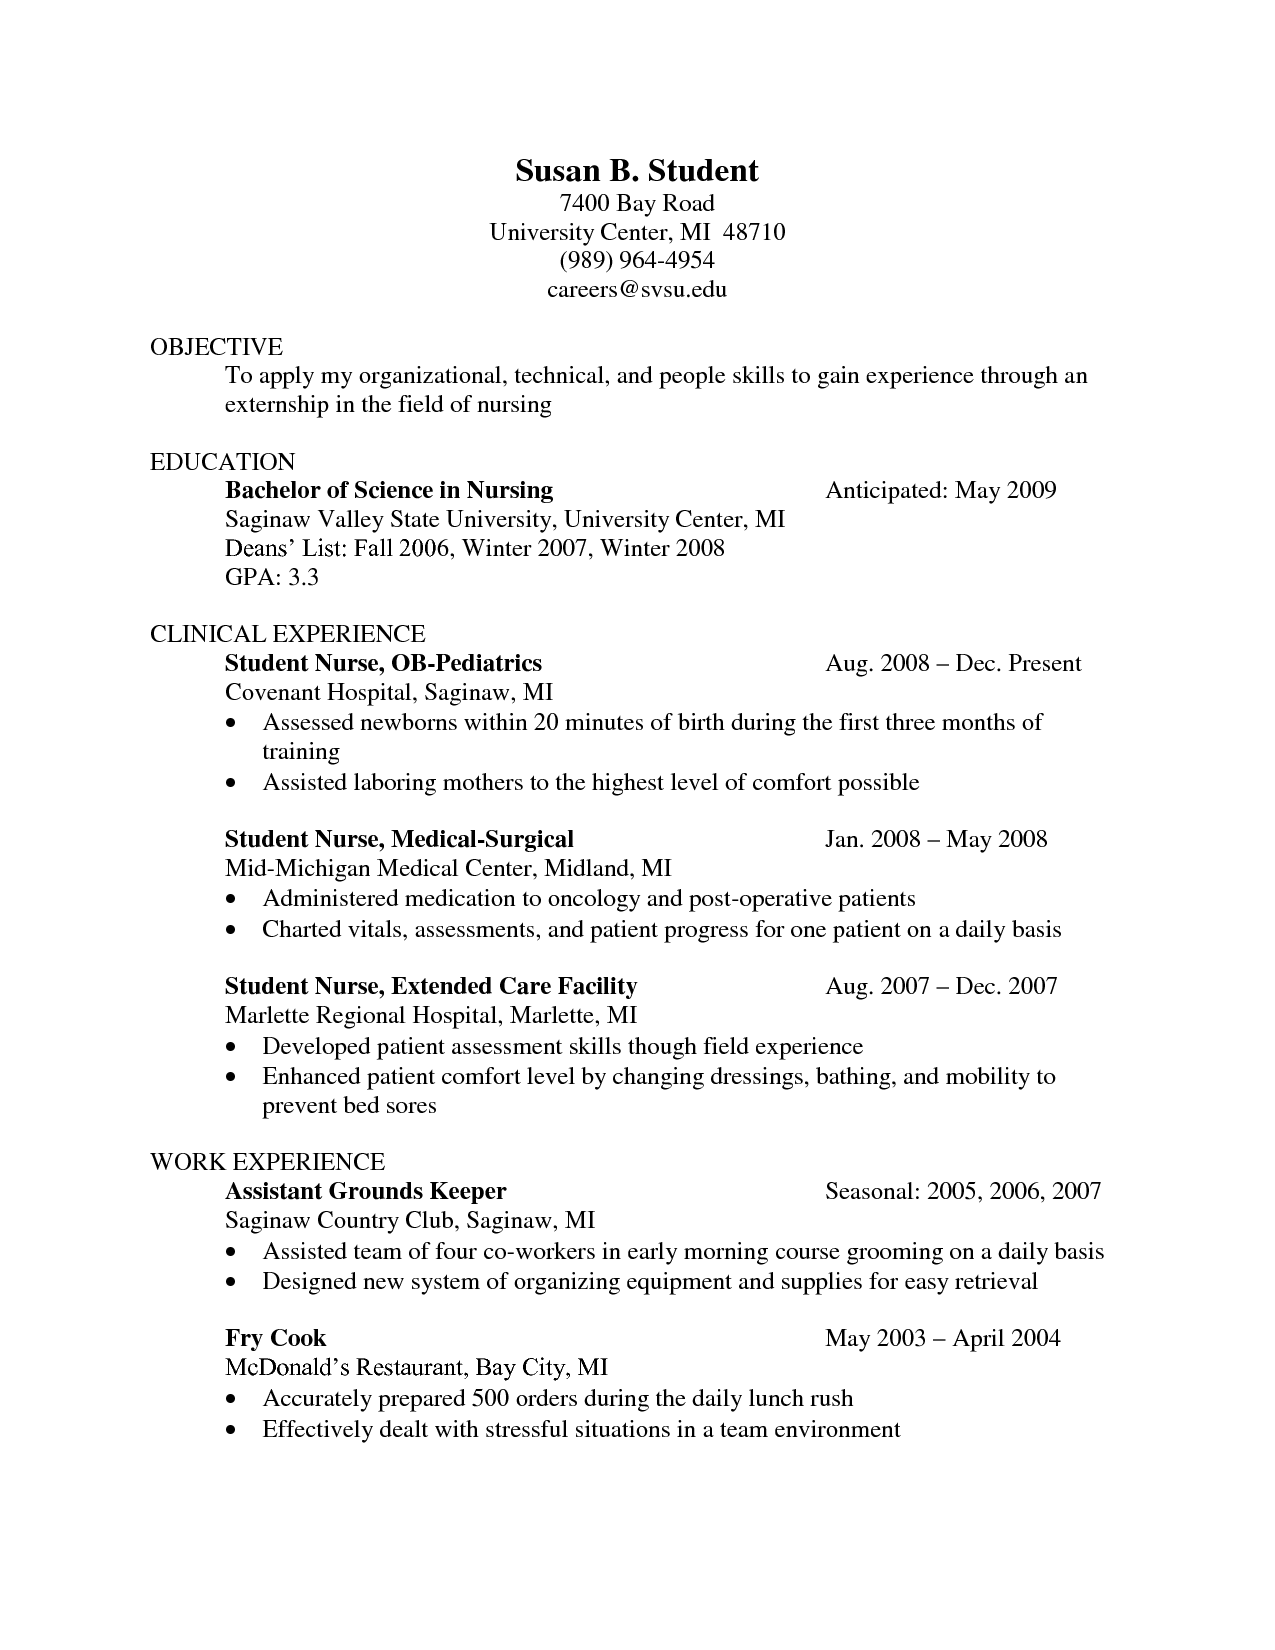 Oncology Nurse Resume Templates Http Www Resumecareer Info